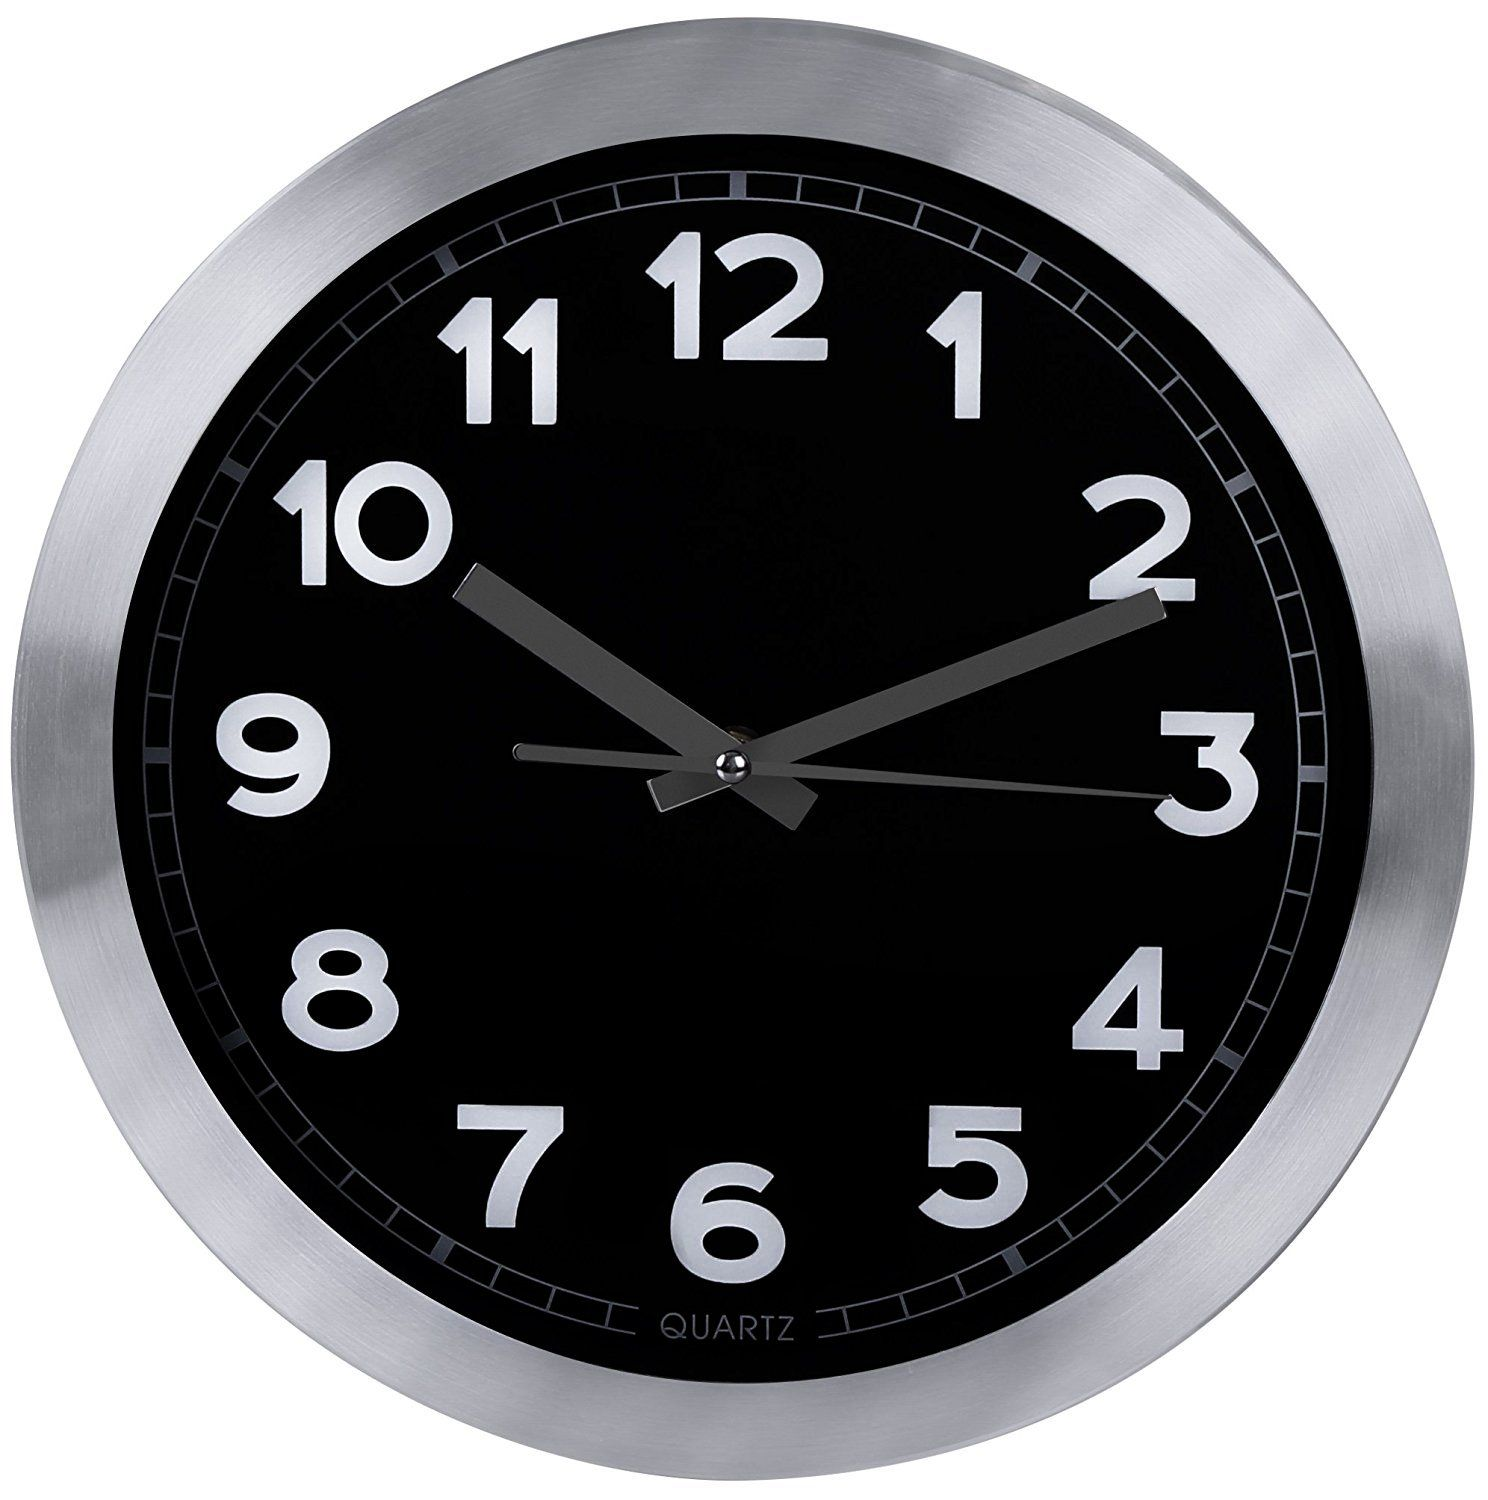 Utopia Home Decorative 12 Inch Black Wall Clock Aluminum Non Ticking Silent Sweep Function Black Dial With White Numbers Silver Hands Battery Operate Med